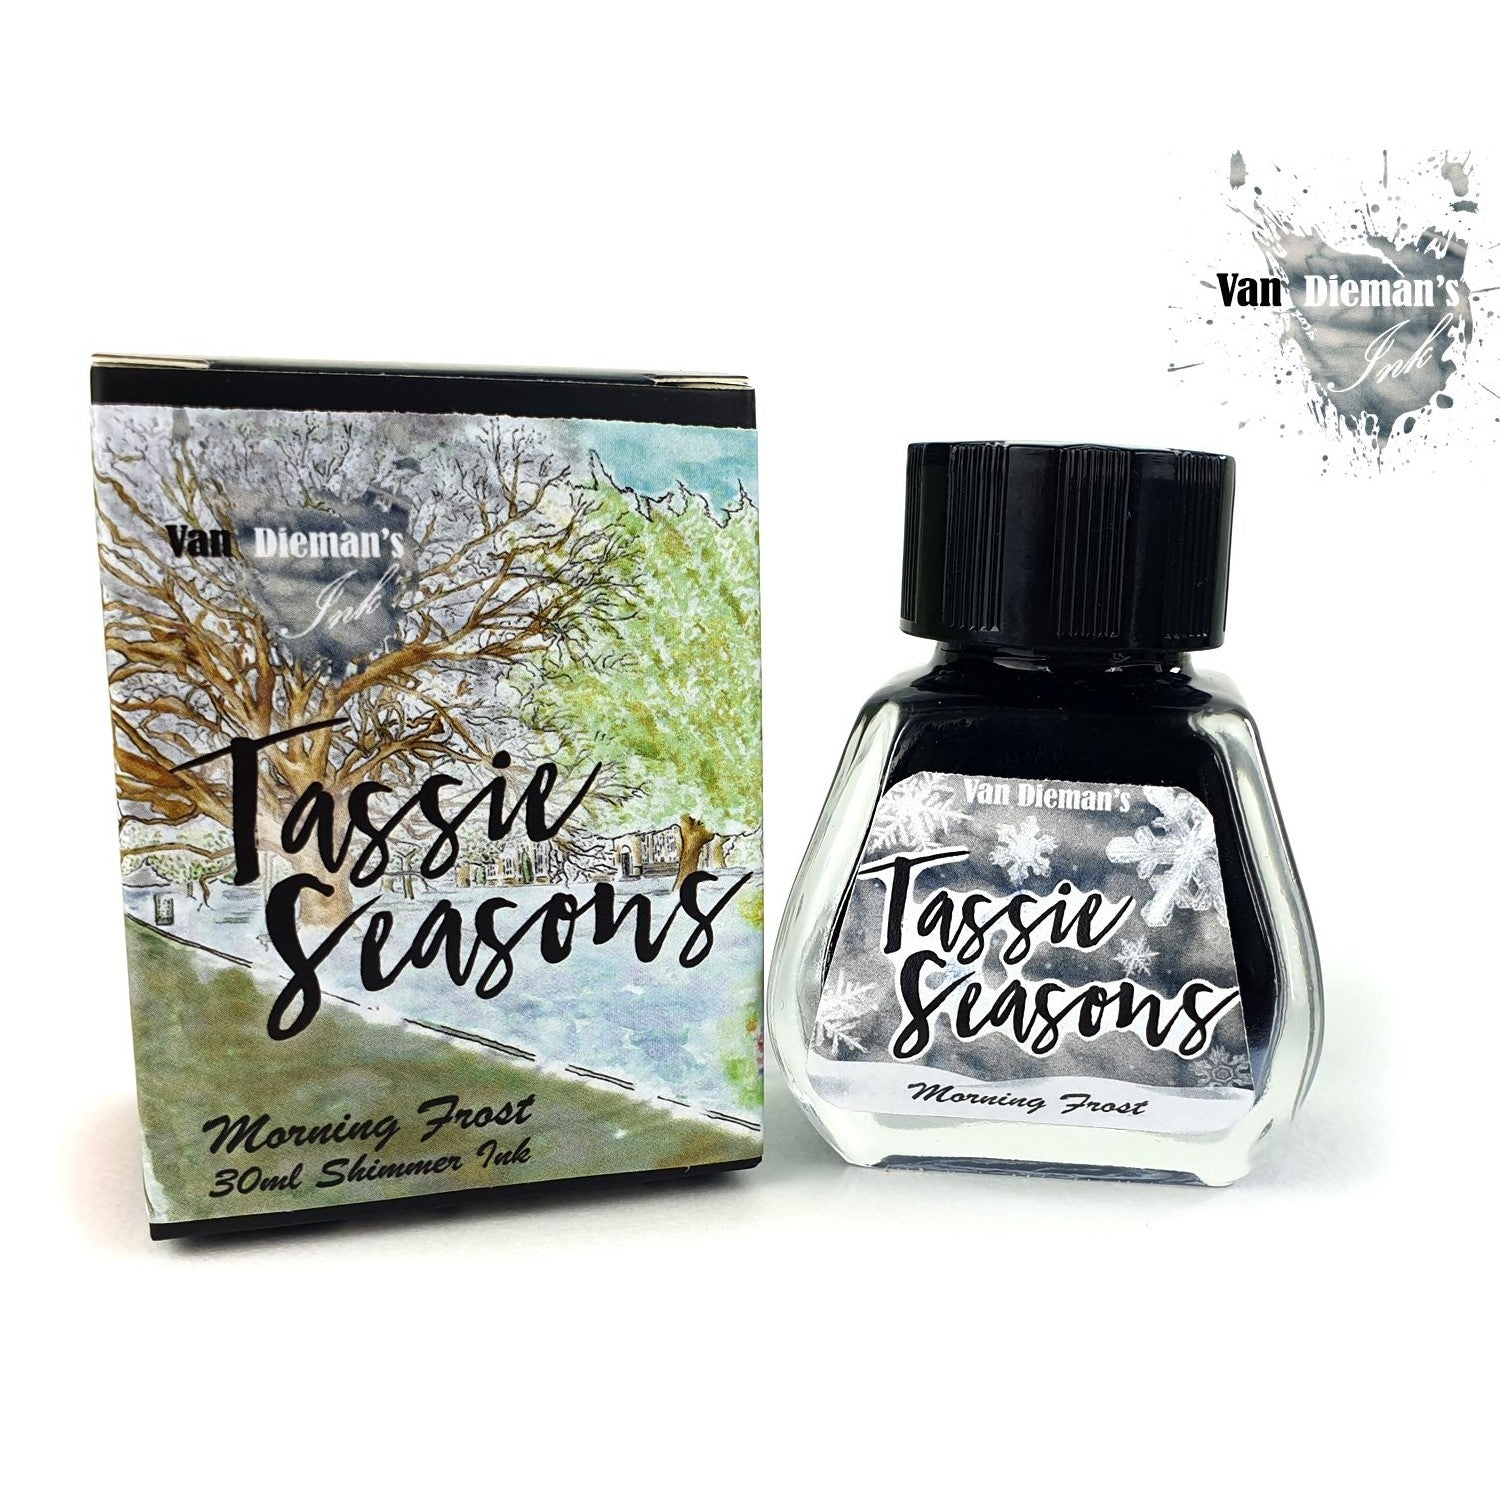 Van Diemans Tassie Seasons (Winter) Morning Frost Shimmer Ink 30ml